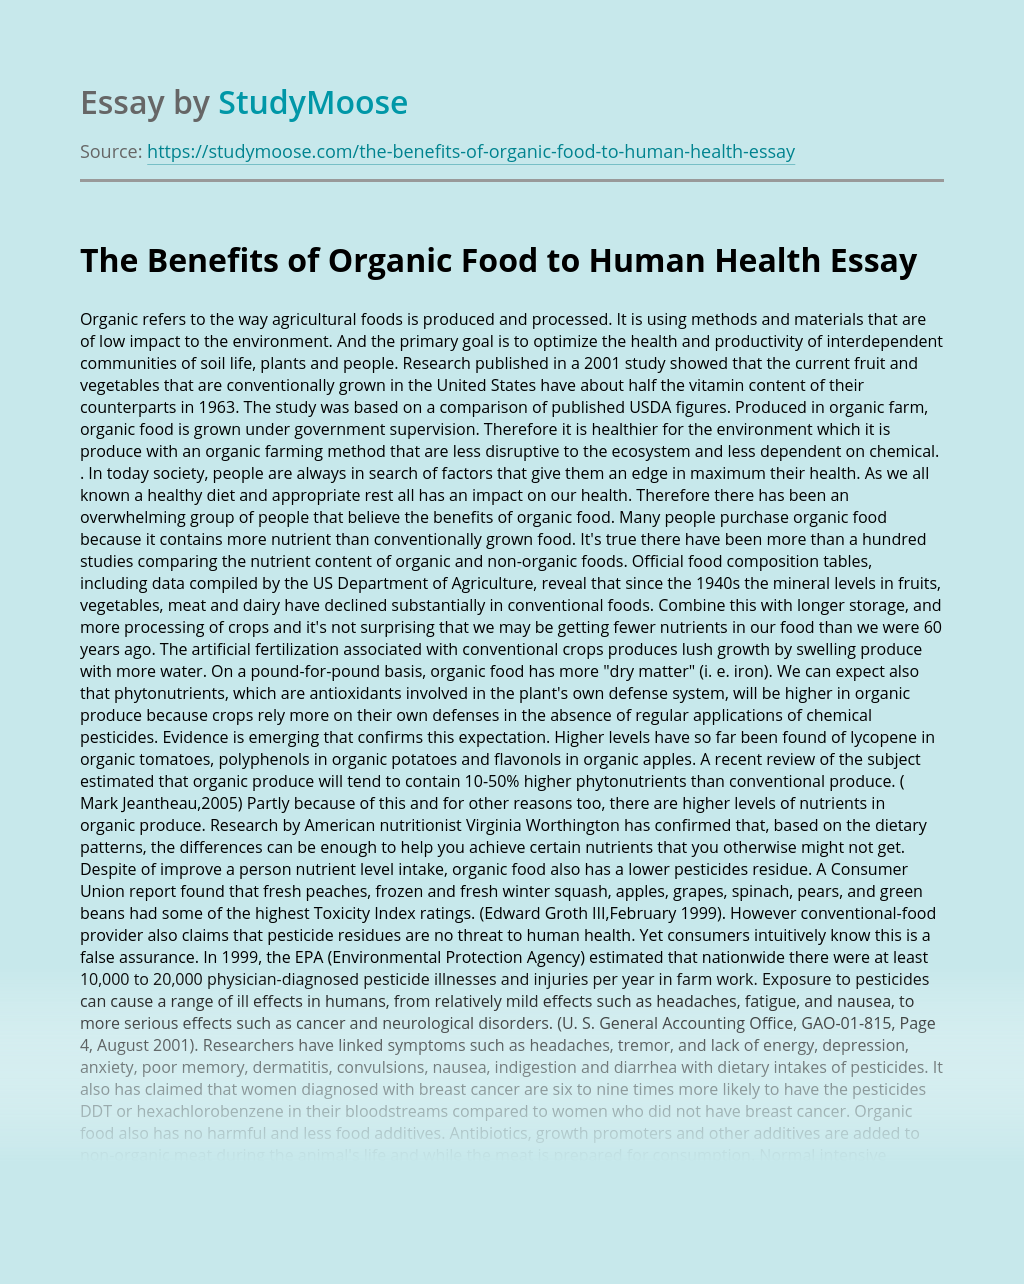 The Benefits of Organic Food to Human Health